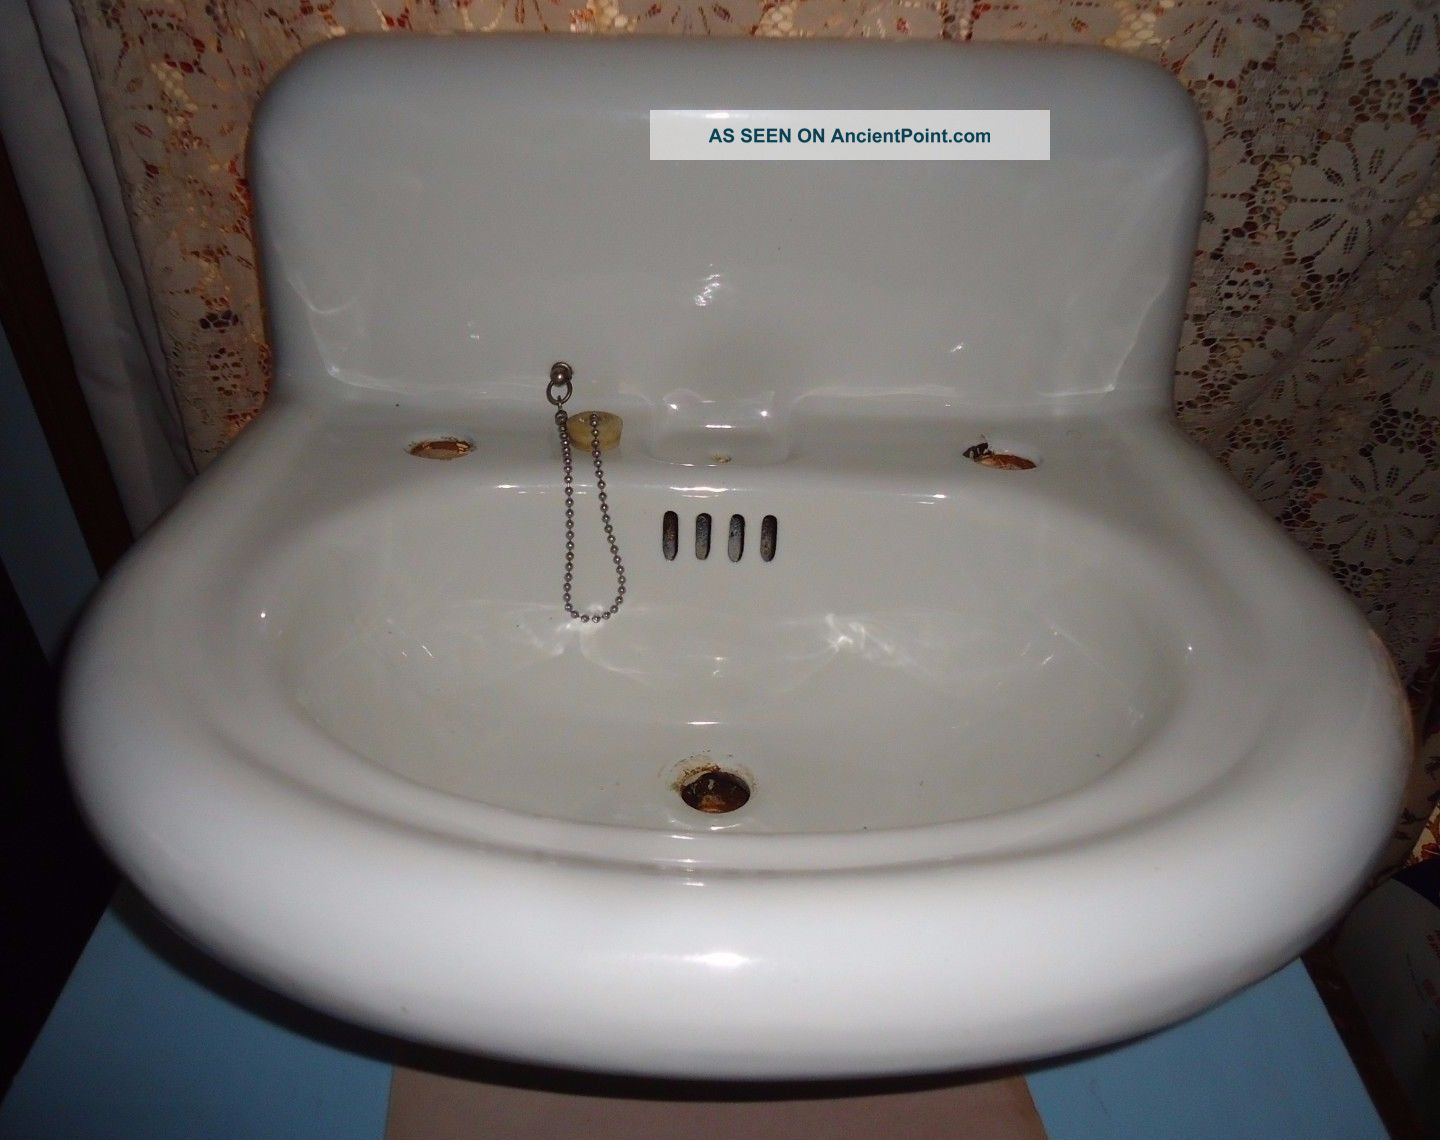 Antique Porcellain Sink,  S.  S.  M.  Co.  Embossed,  Porcellain Cast Iron Vanity Sink Sinks photo